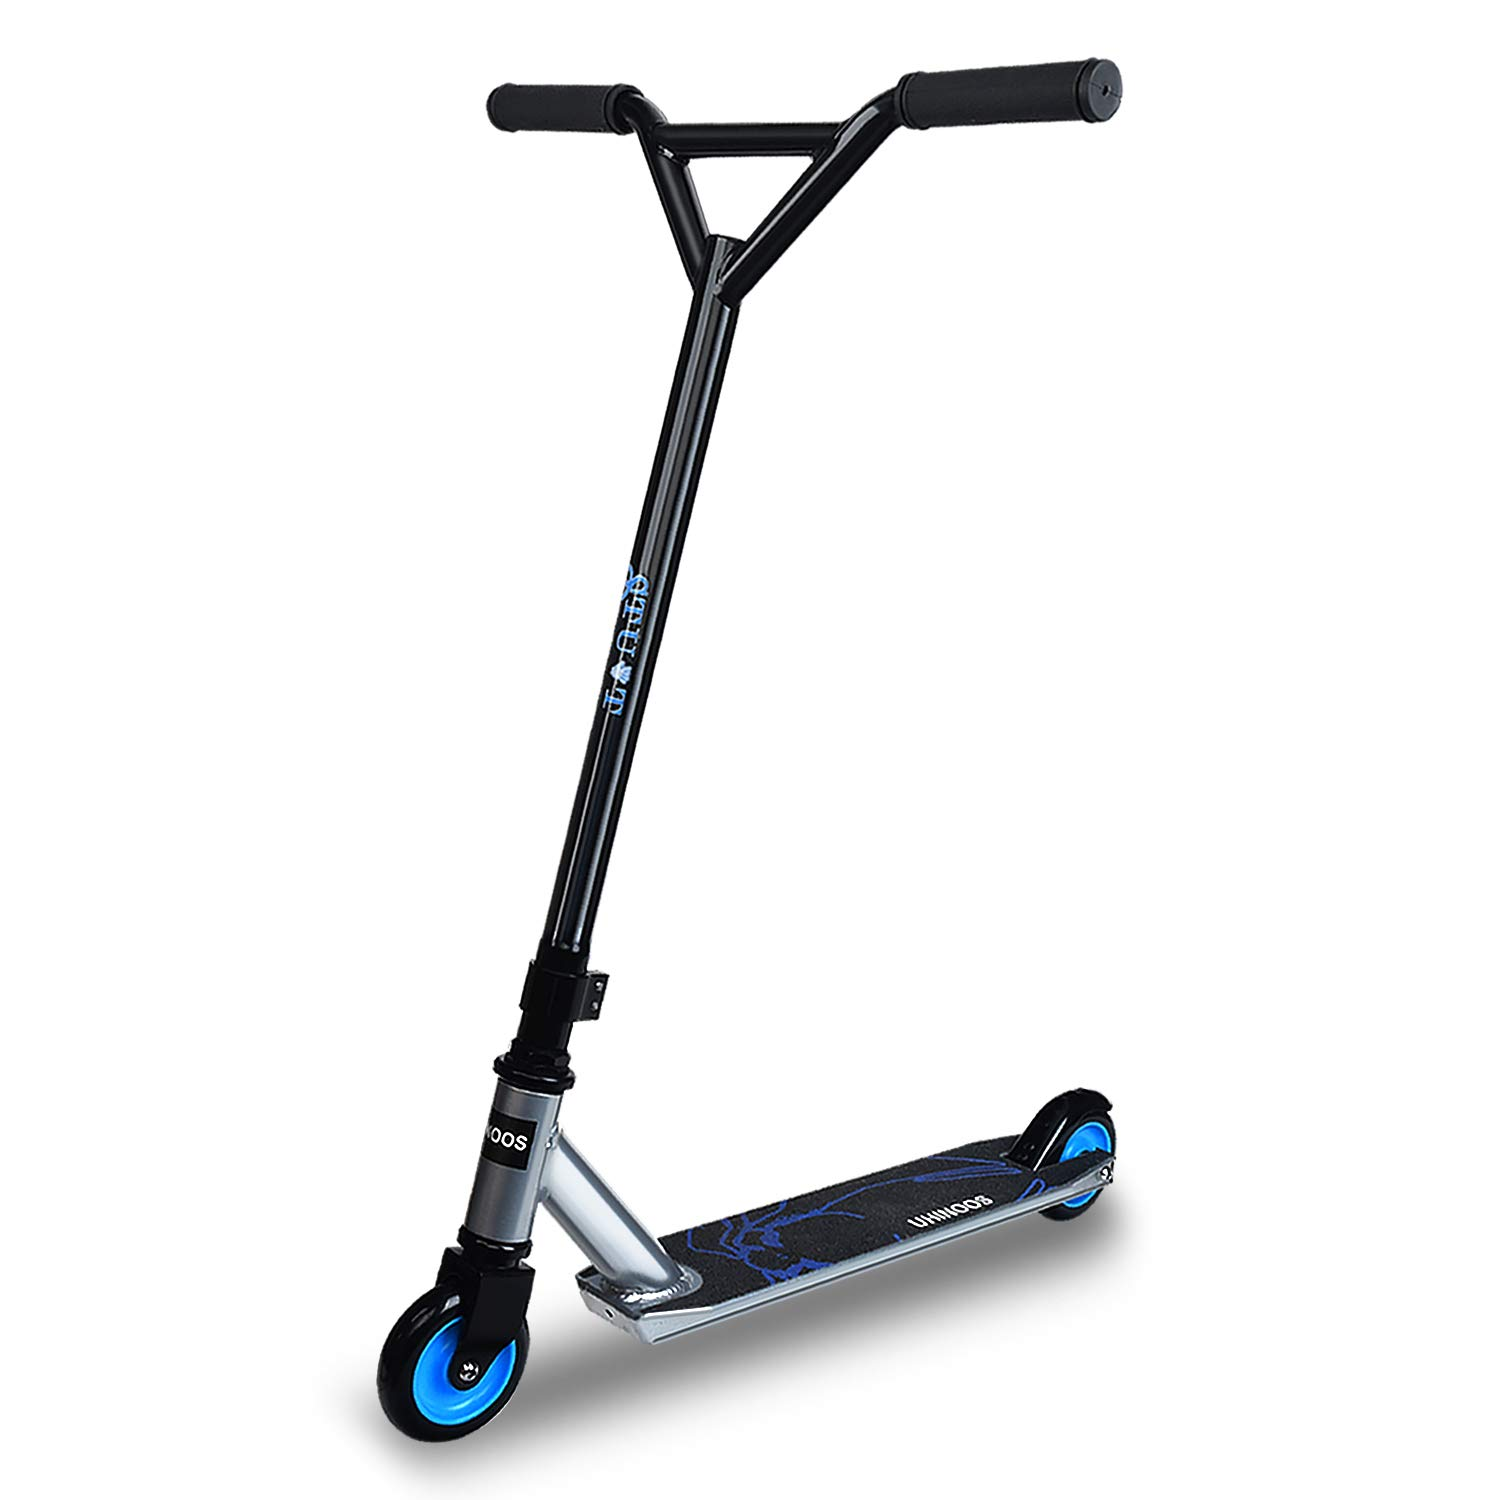 UHINOOS Stunt Scooter Pro Scooters for Beginners Best Trick Stunt Scooter with Stable Performance Freestyle Kick Scooter for Boys and Girls(Black and Silver) by UHINOOS